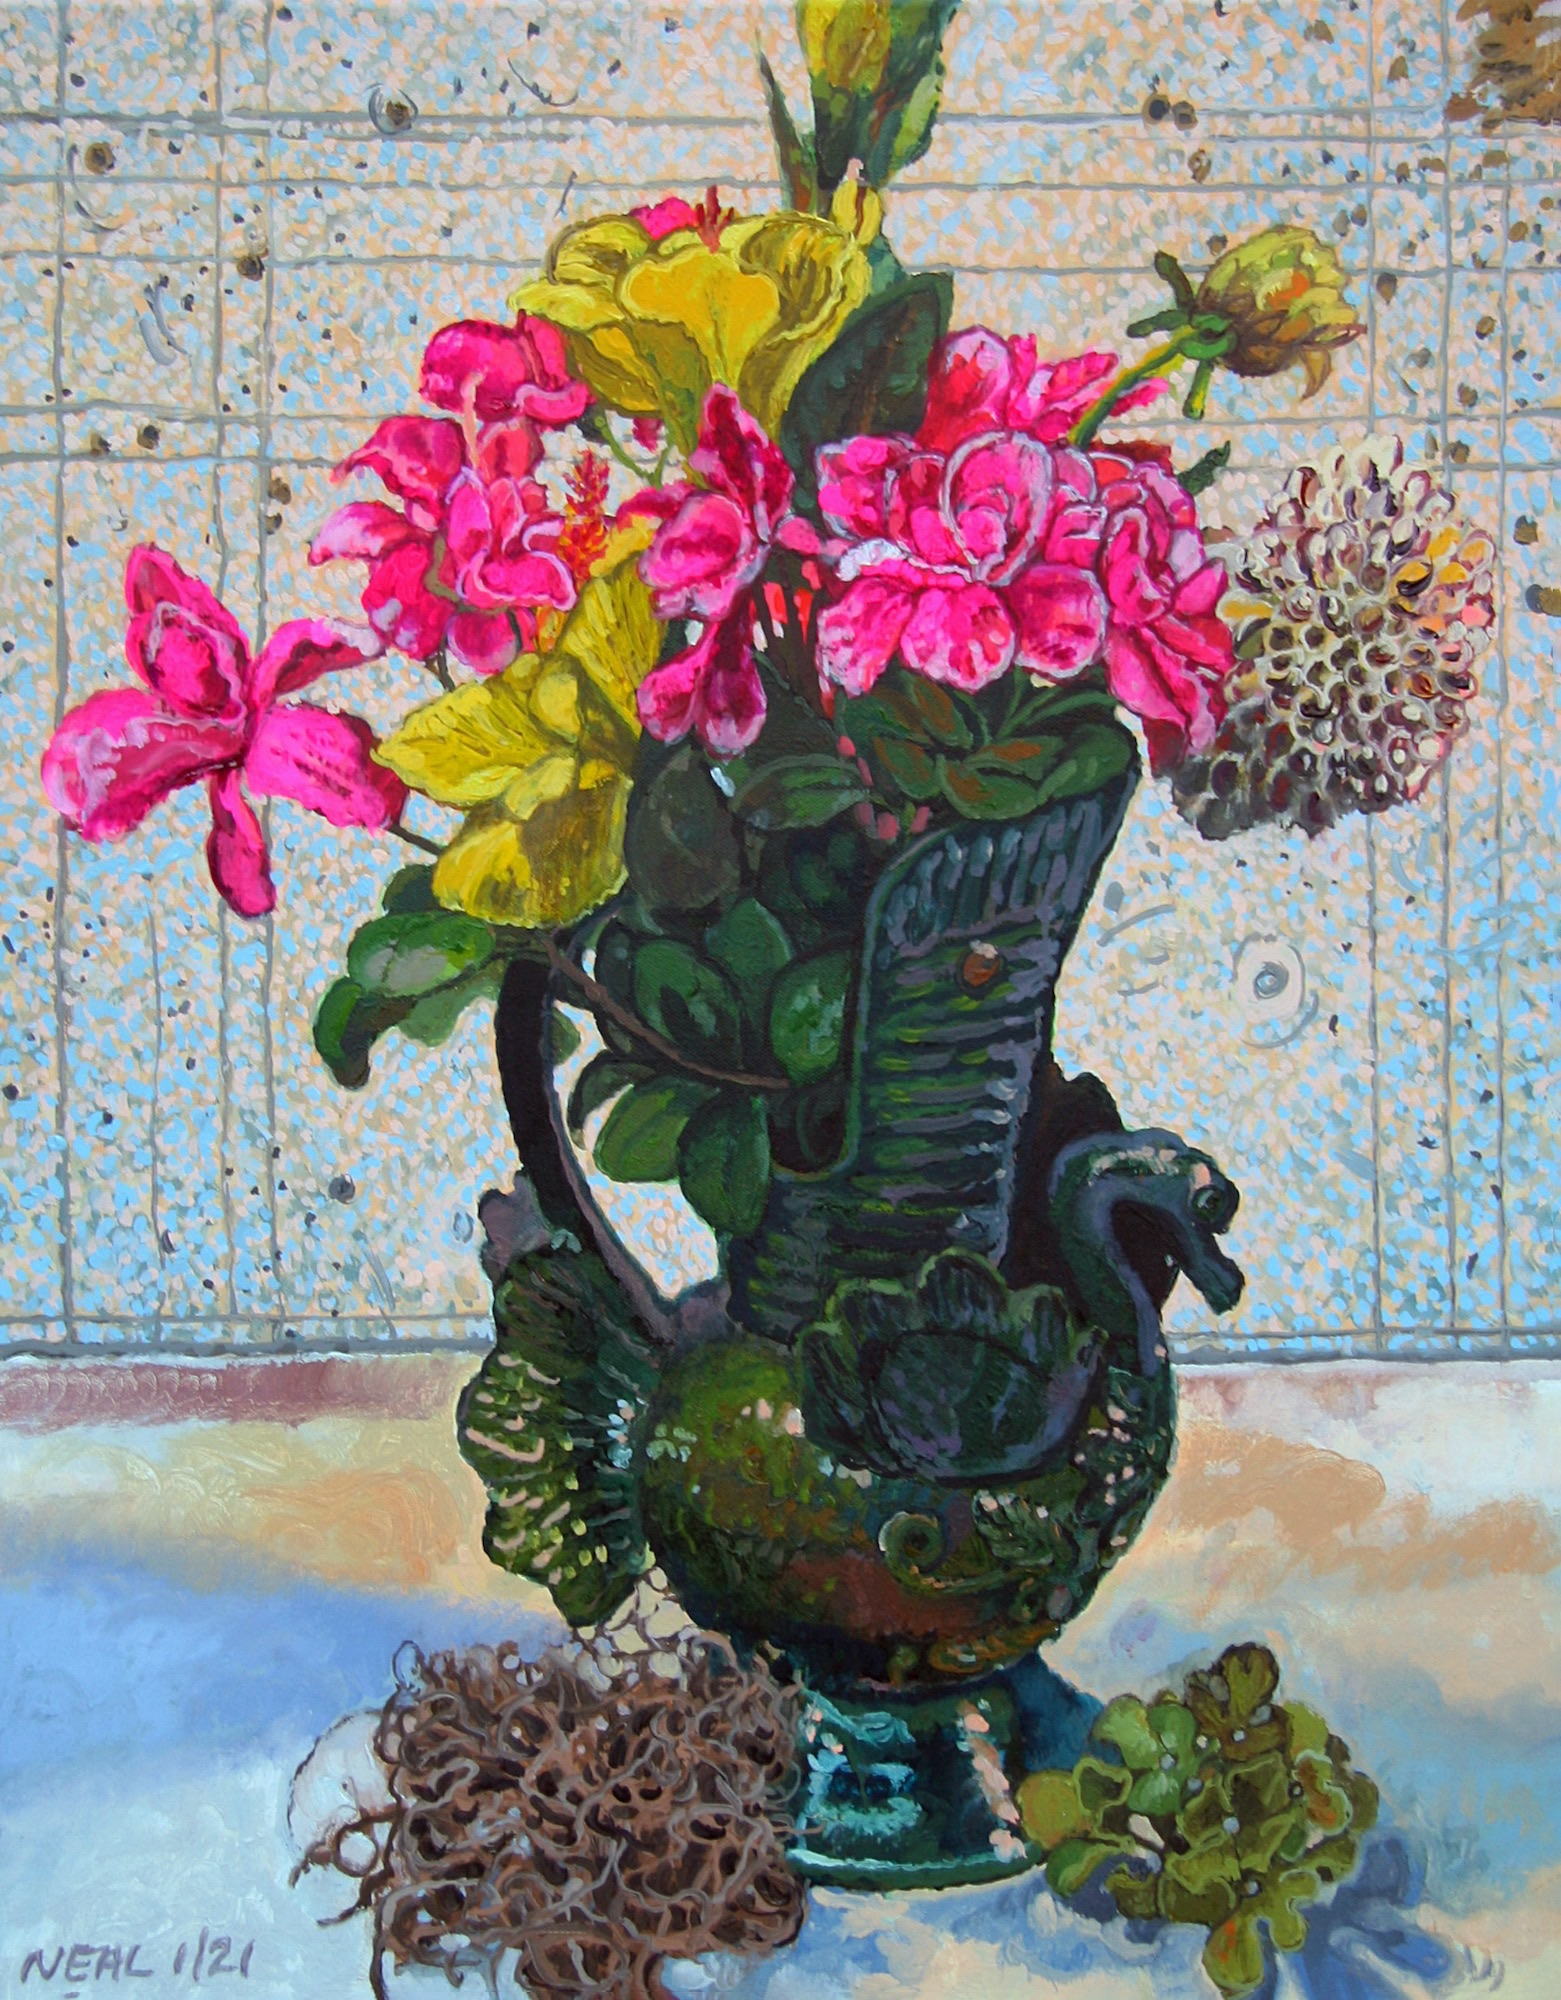 Flowers in a green vase shaped like a swan in front of studio wall